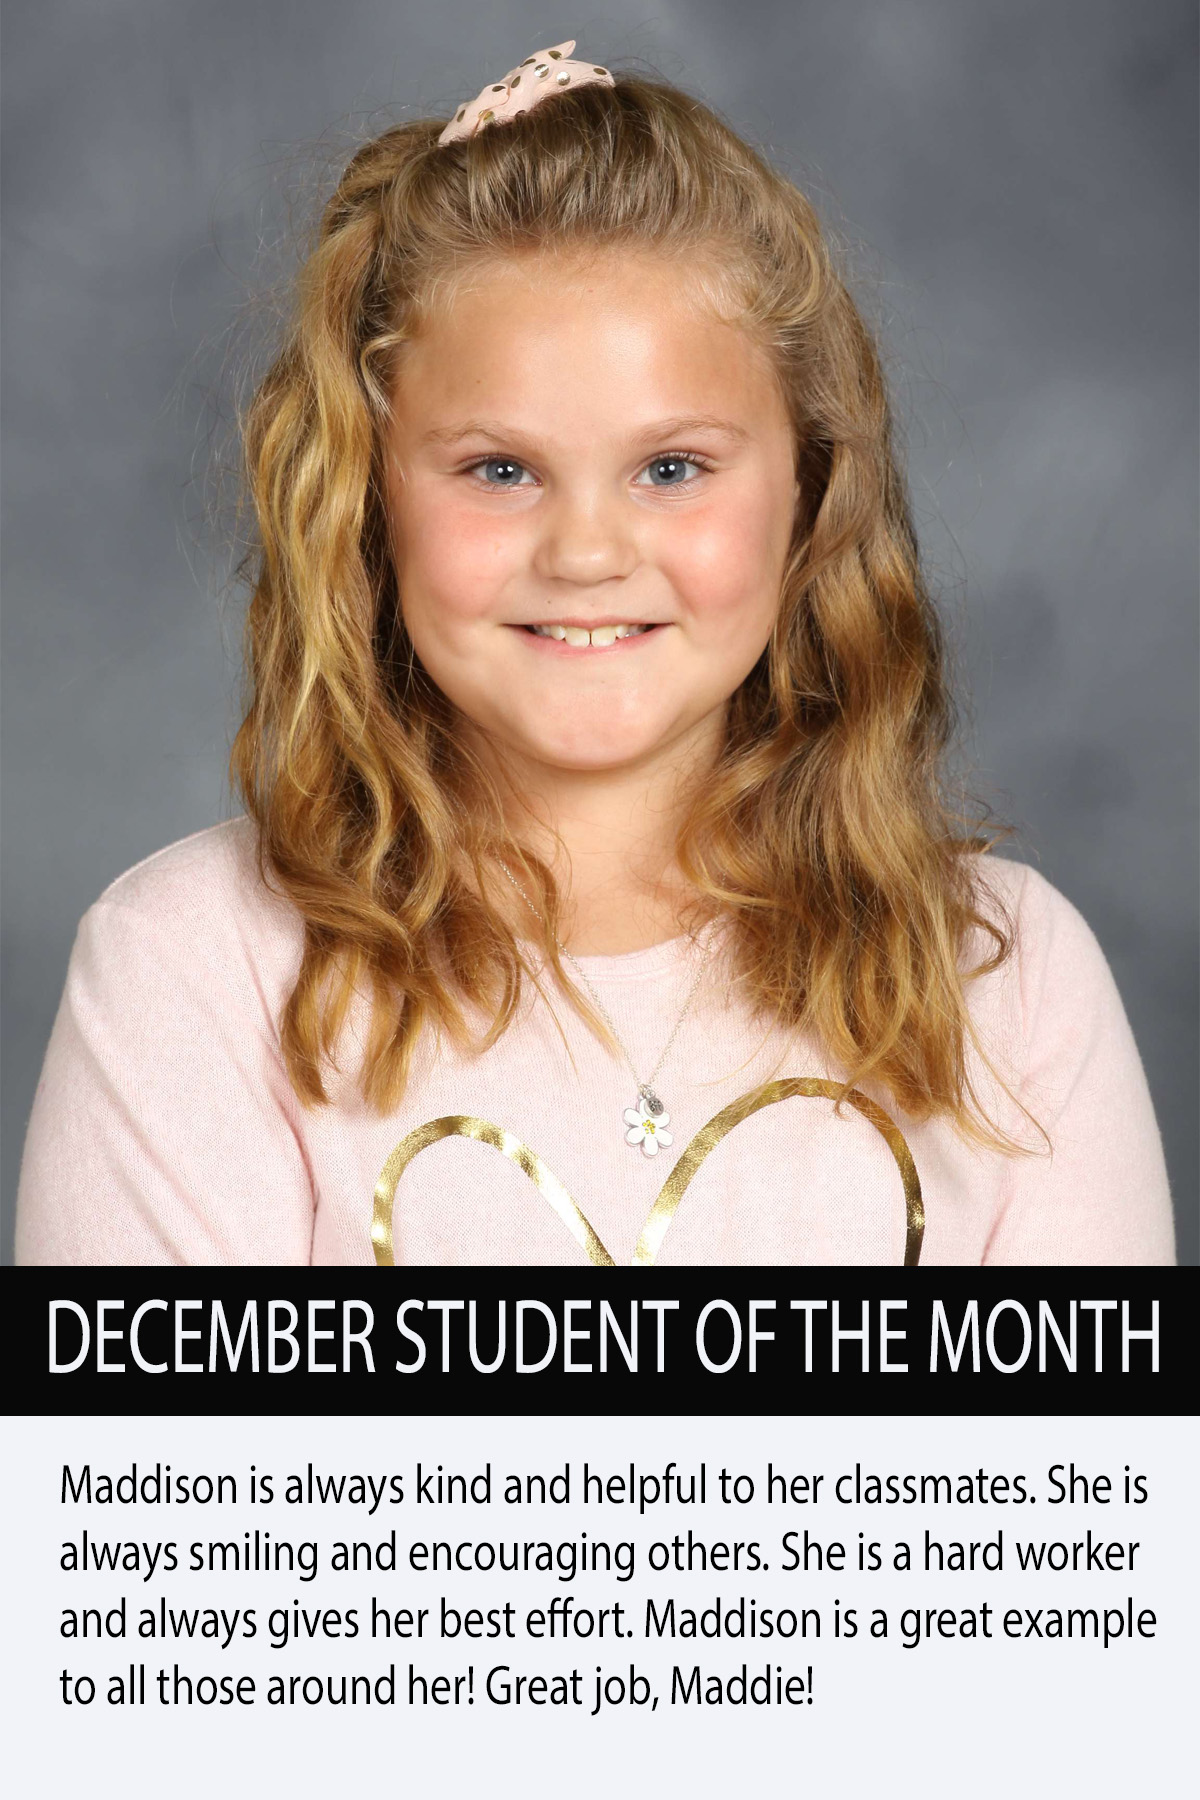 Mrs. Atkinsons November Student of the Month